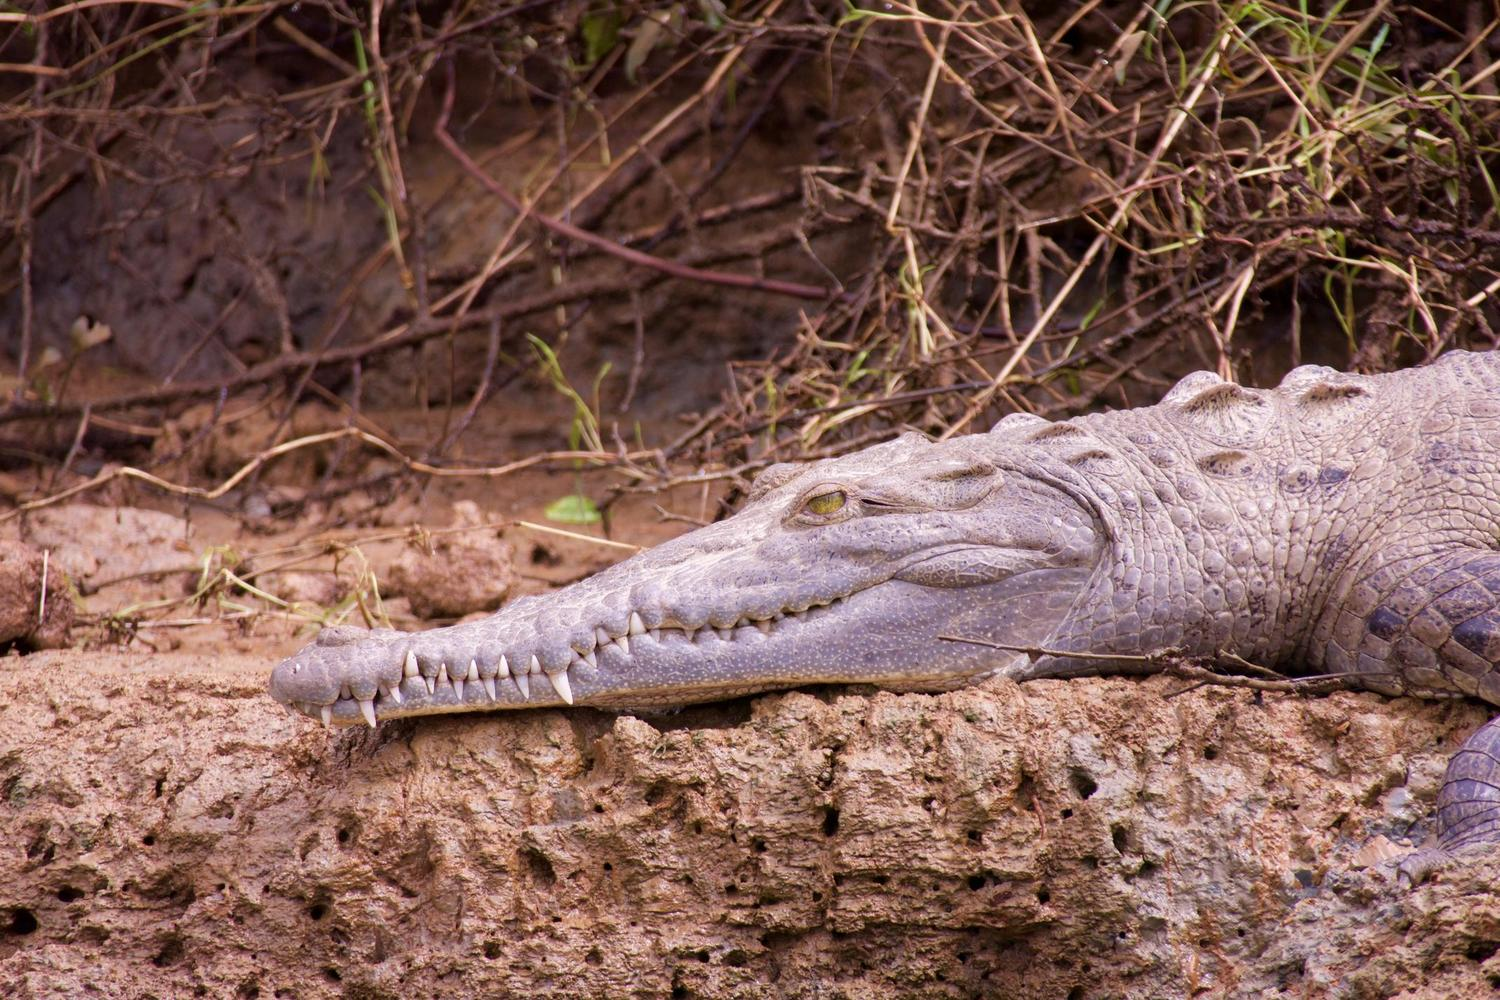 A crocodile basking on the banks of the Sierpe River